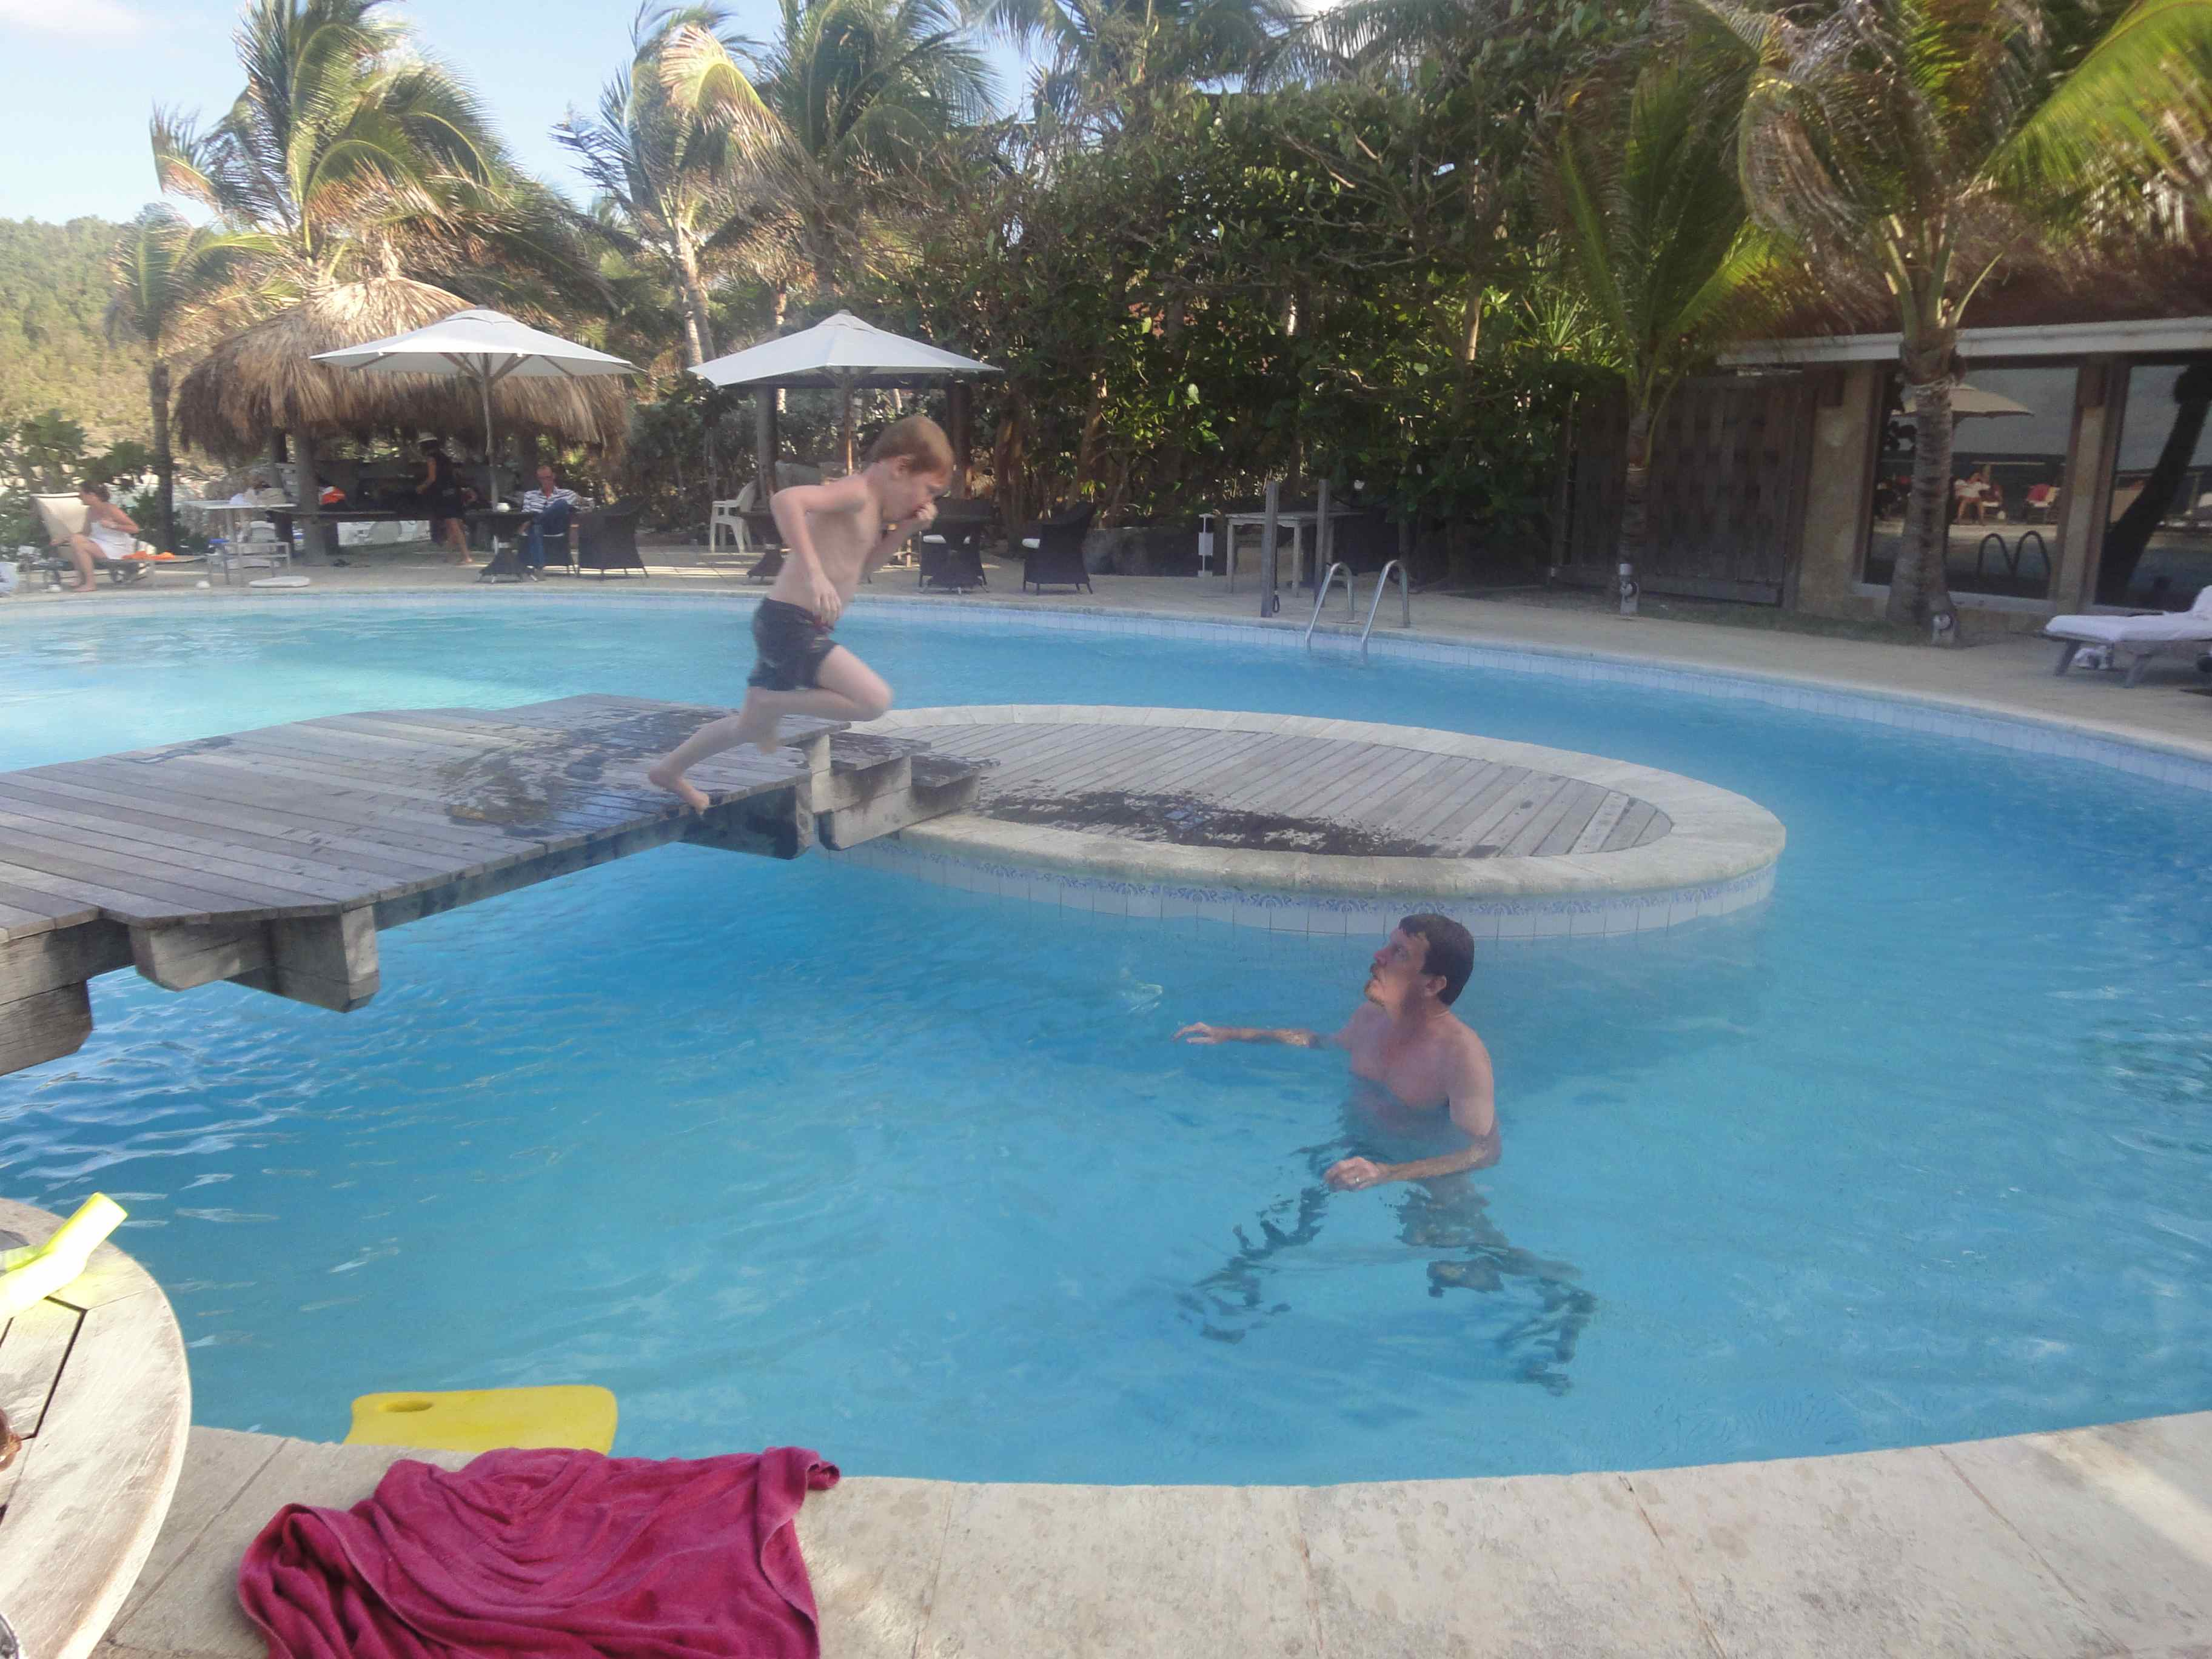 Hotel Pool - Francois mid-air